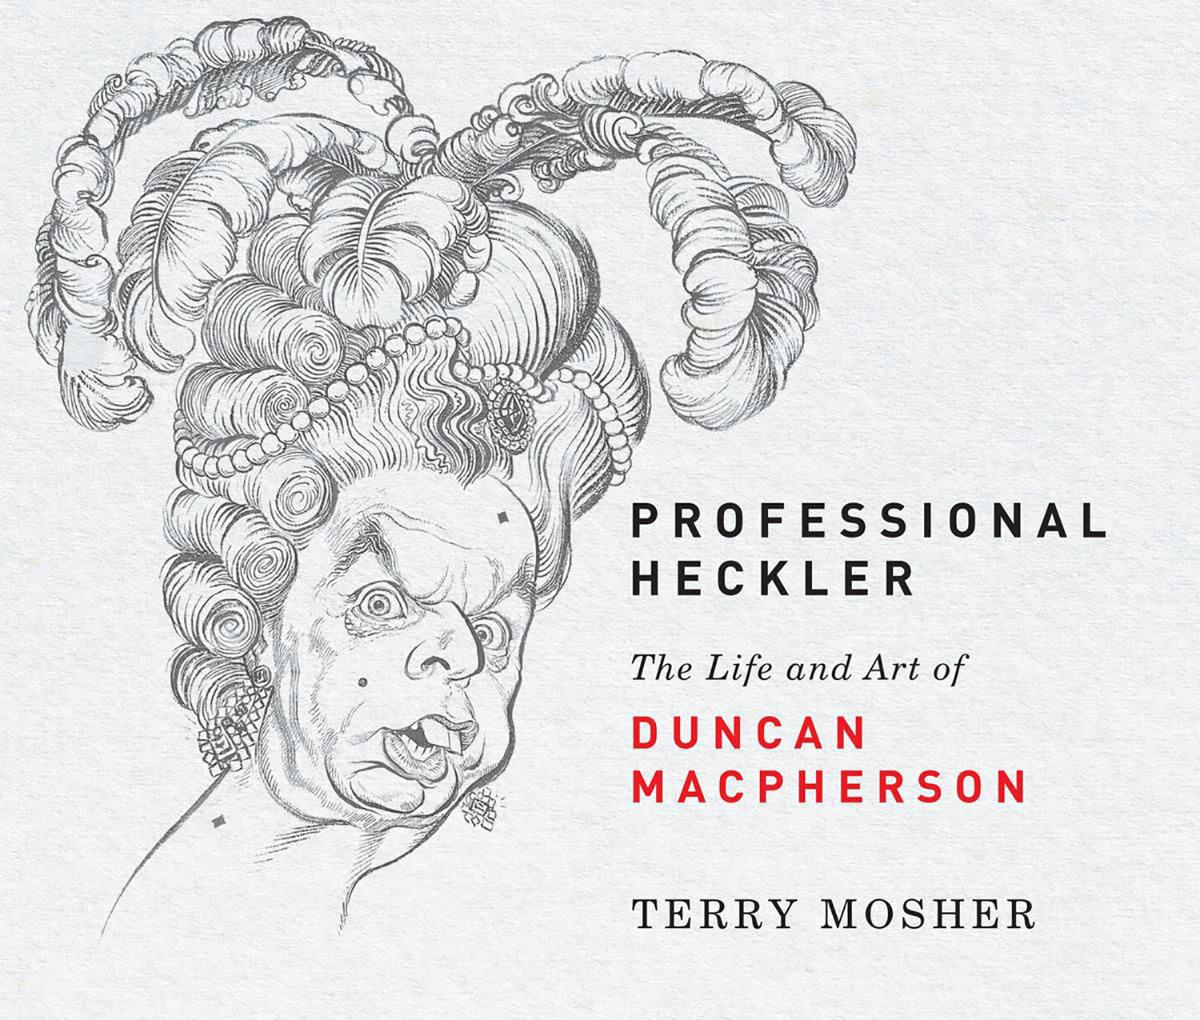 Terry Mosher's latest book chronicles the life and art of Duncan Macpherson